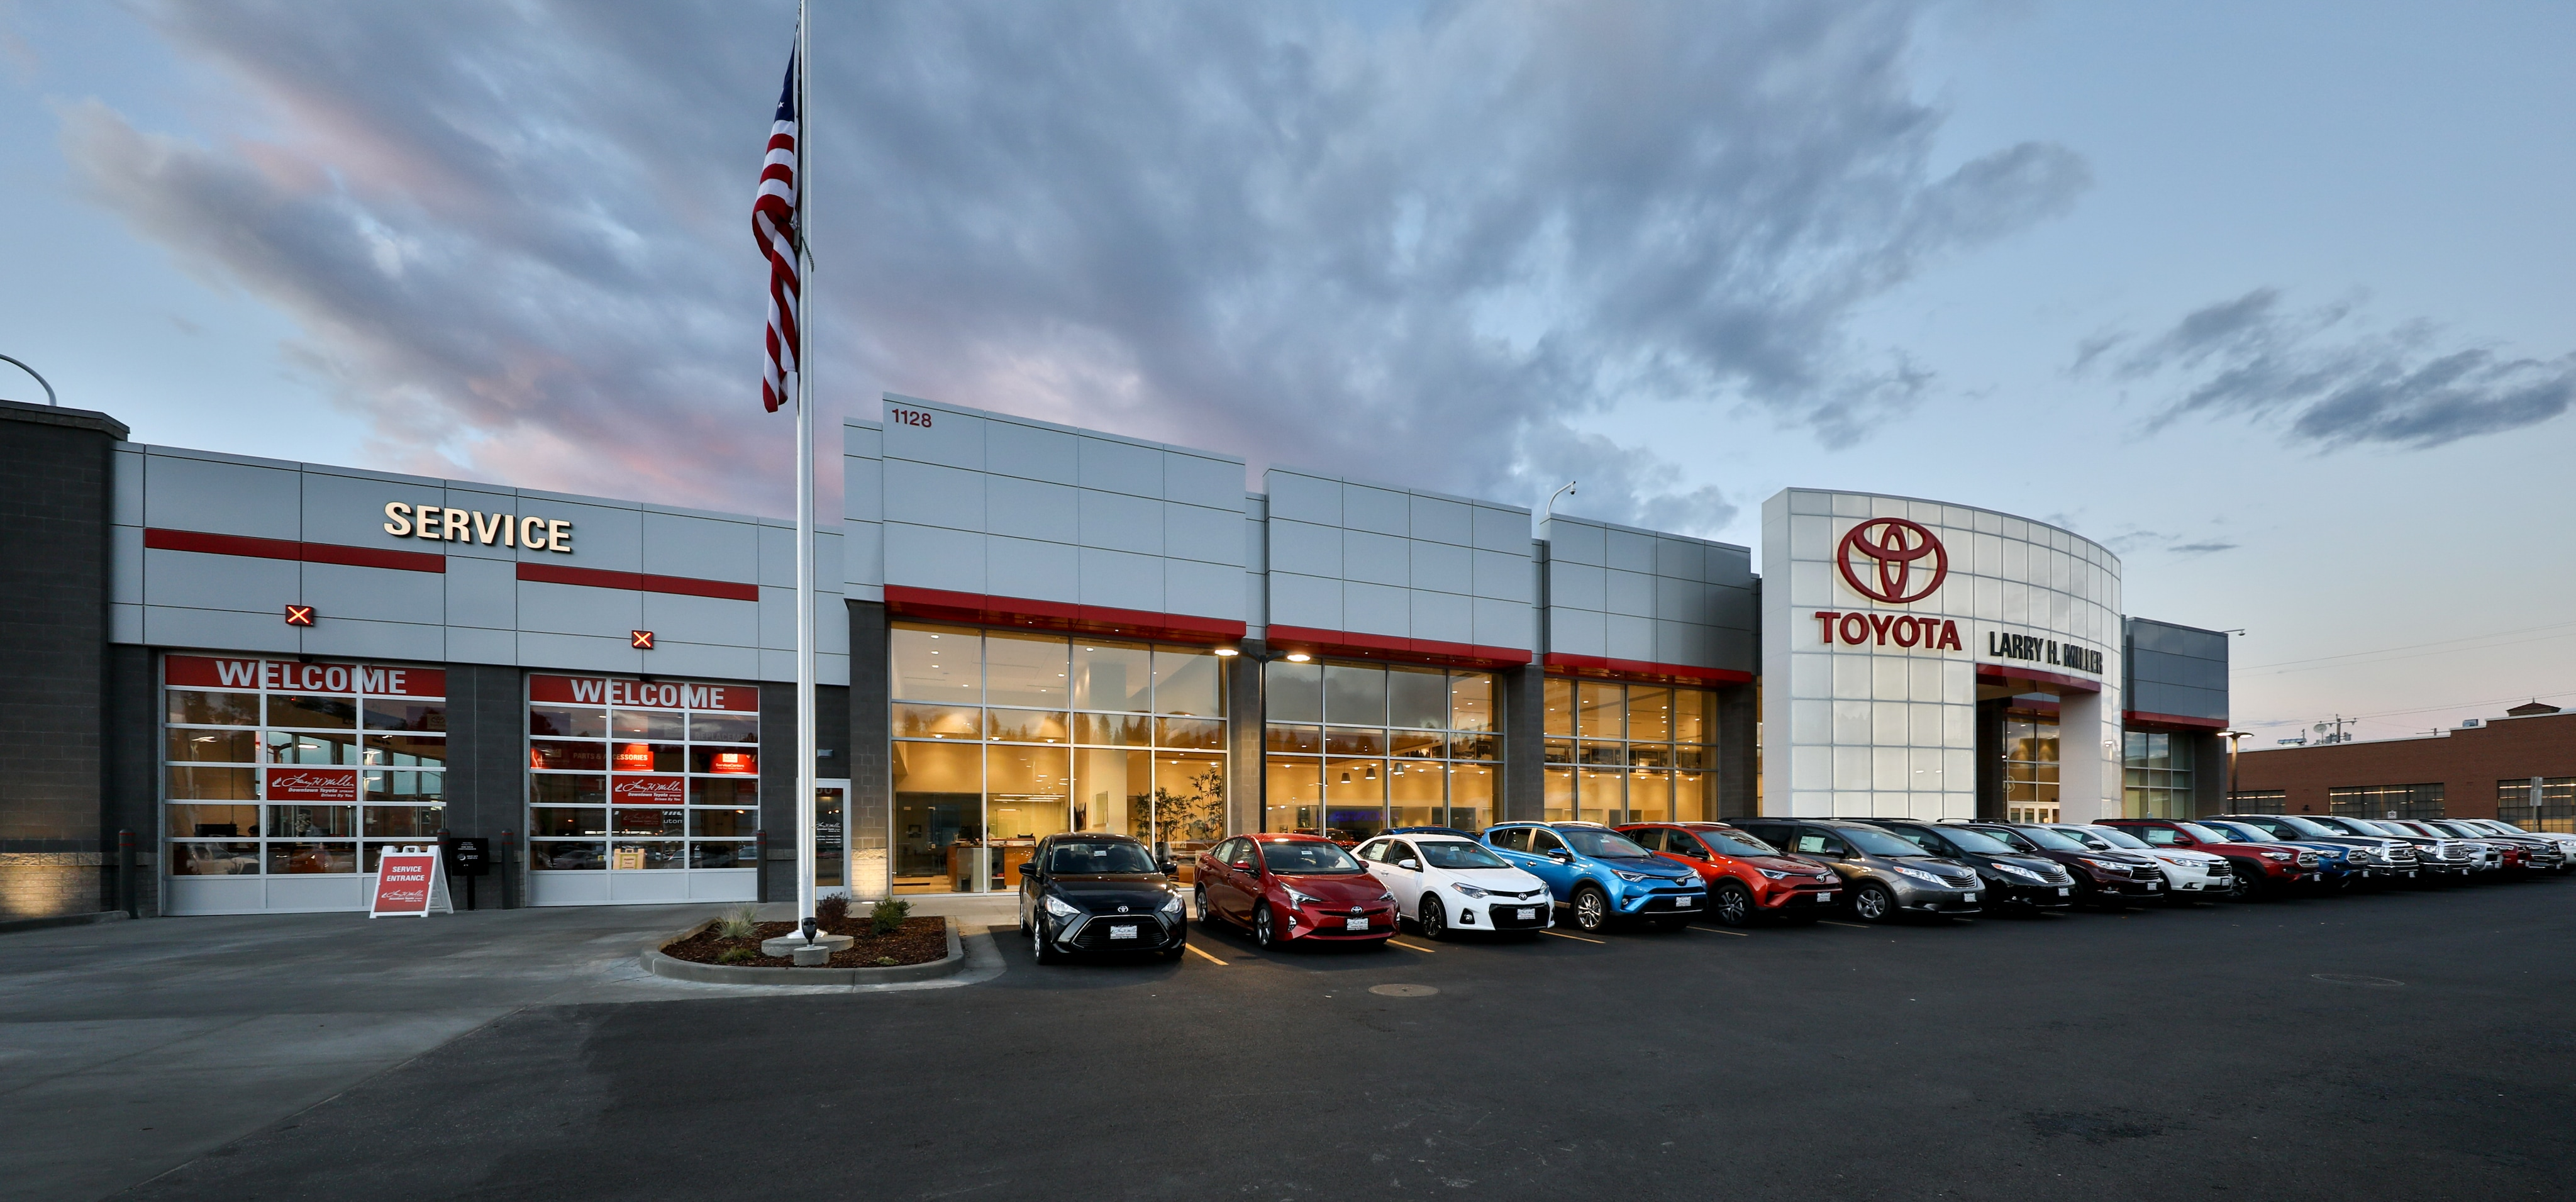 Larry H Miller Spokane >> About Larry H Miller Downtown Toyota Serving Spokane Valley